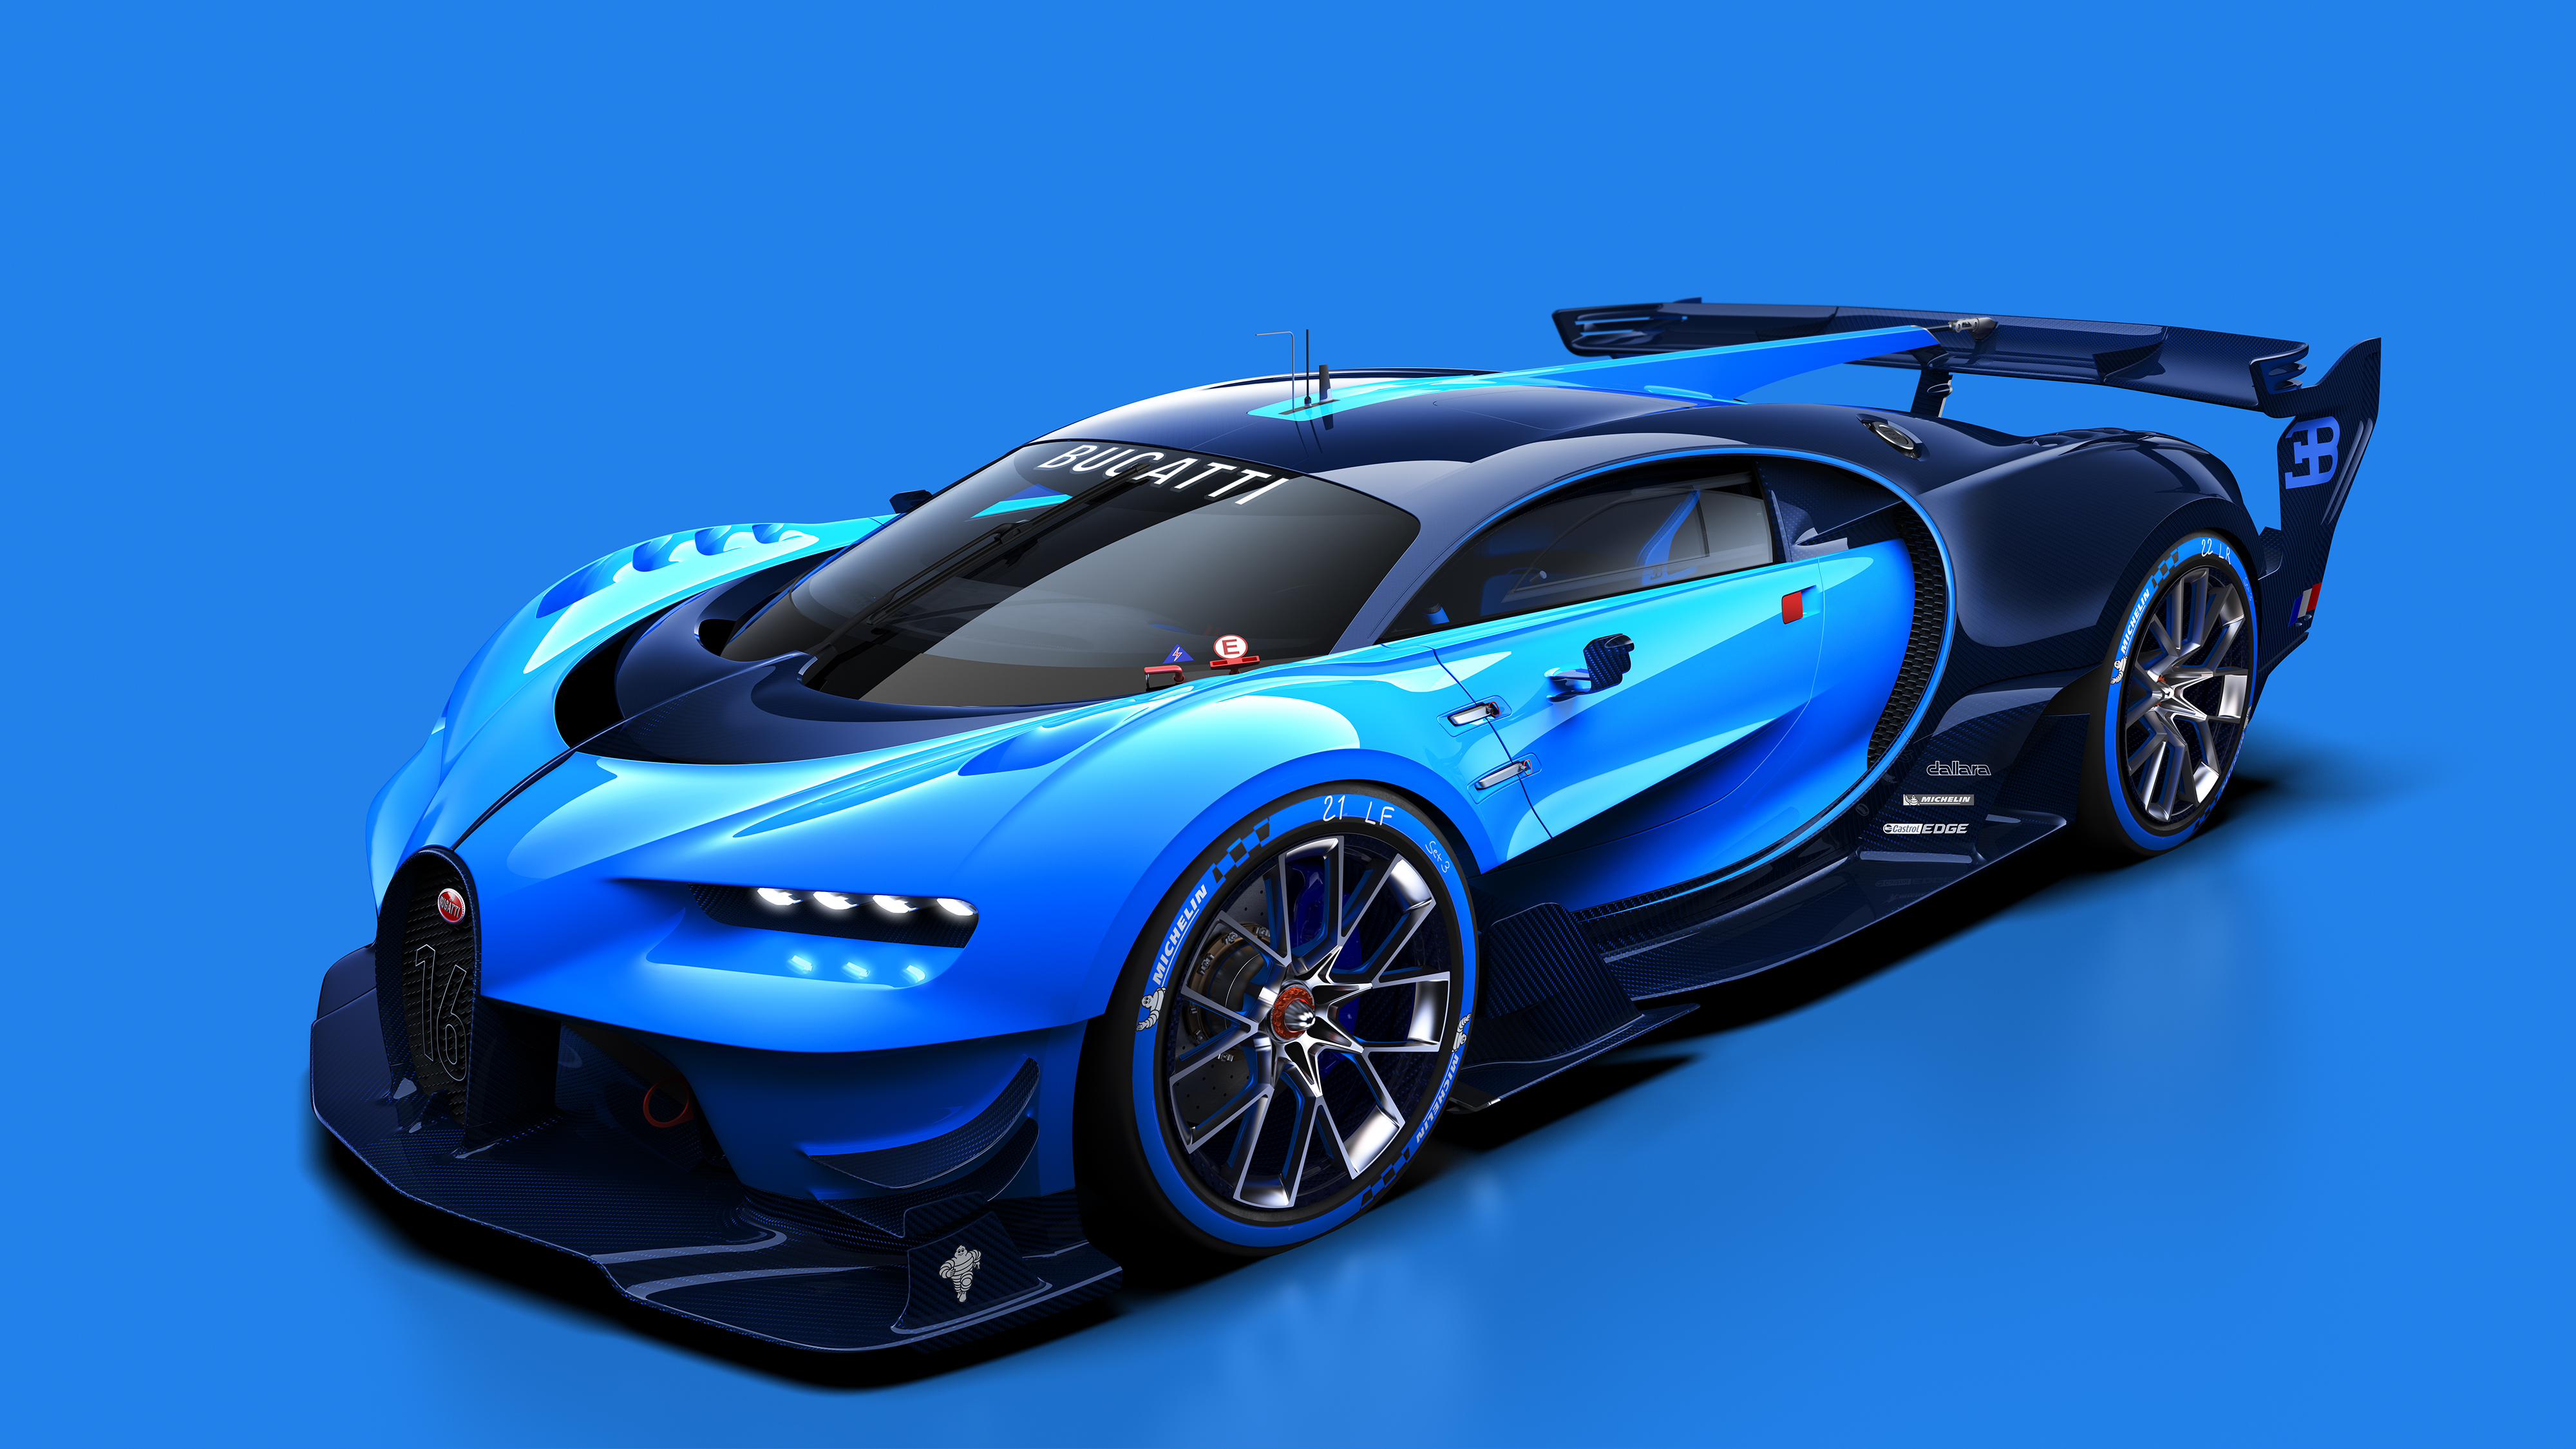 2018 Bugatti Vision Gt Release Date And Specs >> Bugatti Vision Gran Turismo This Is For The Fans Automotive